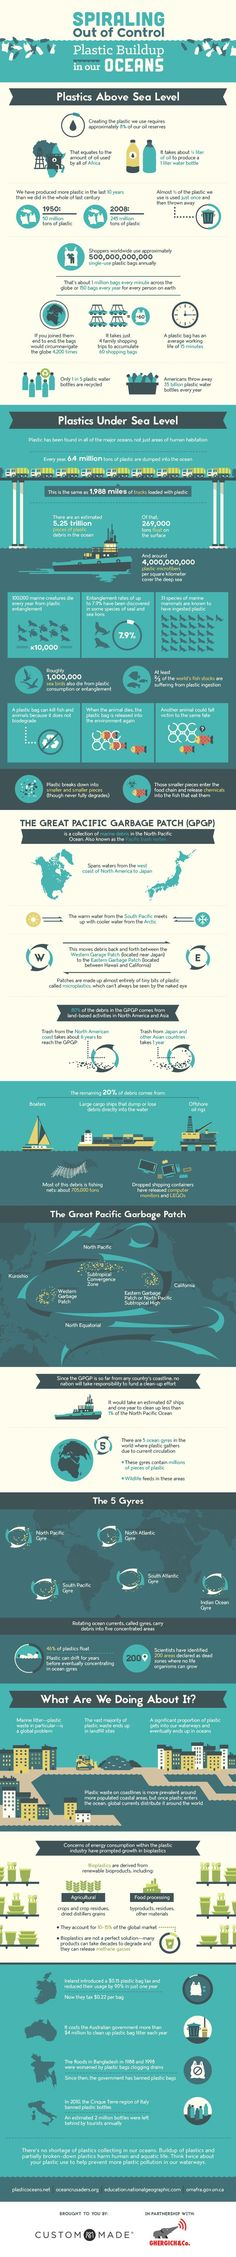 Spiraling Out of Control Plastic Building in our Oceans #infographic #Plastic #Environment